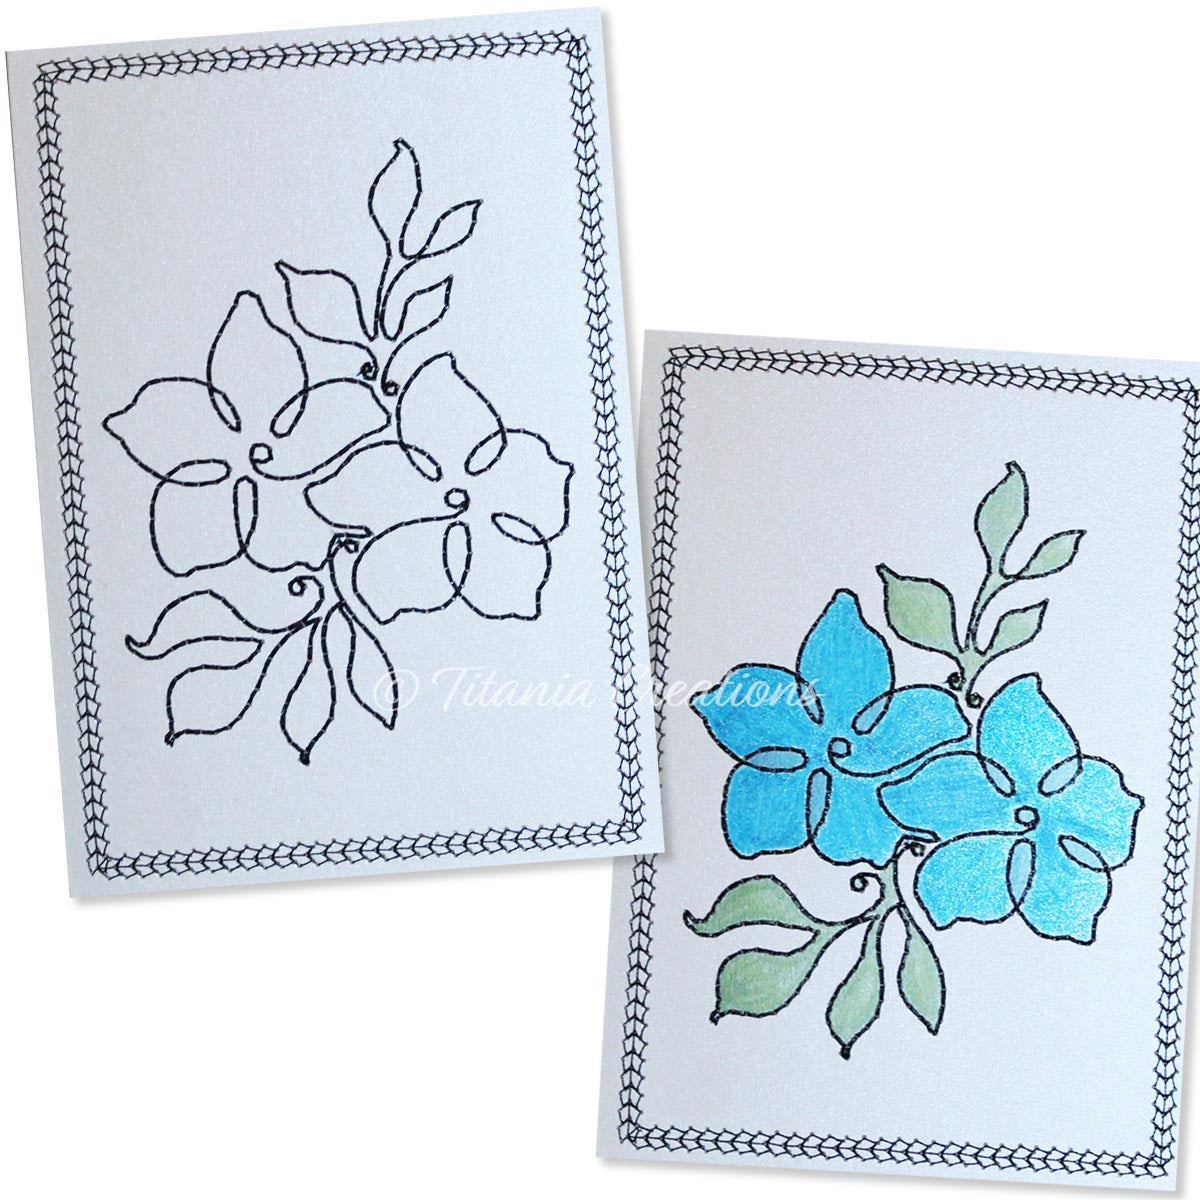 Simply Floral 10 Card Stock Design 5x7